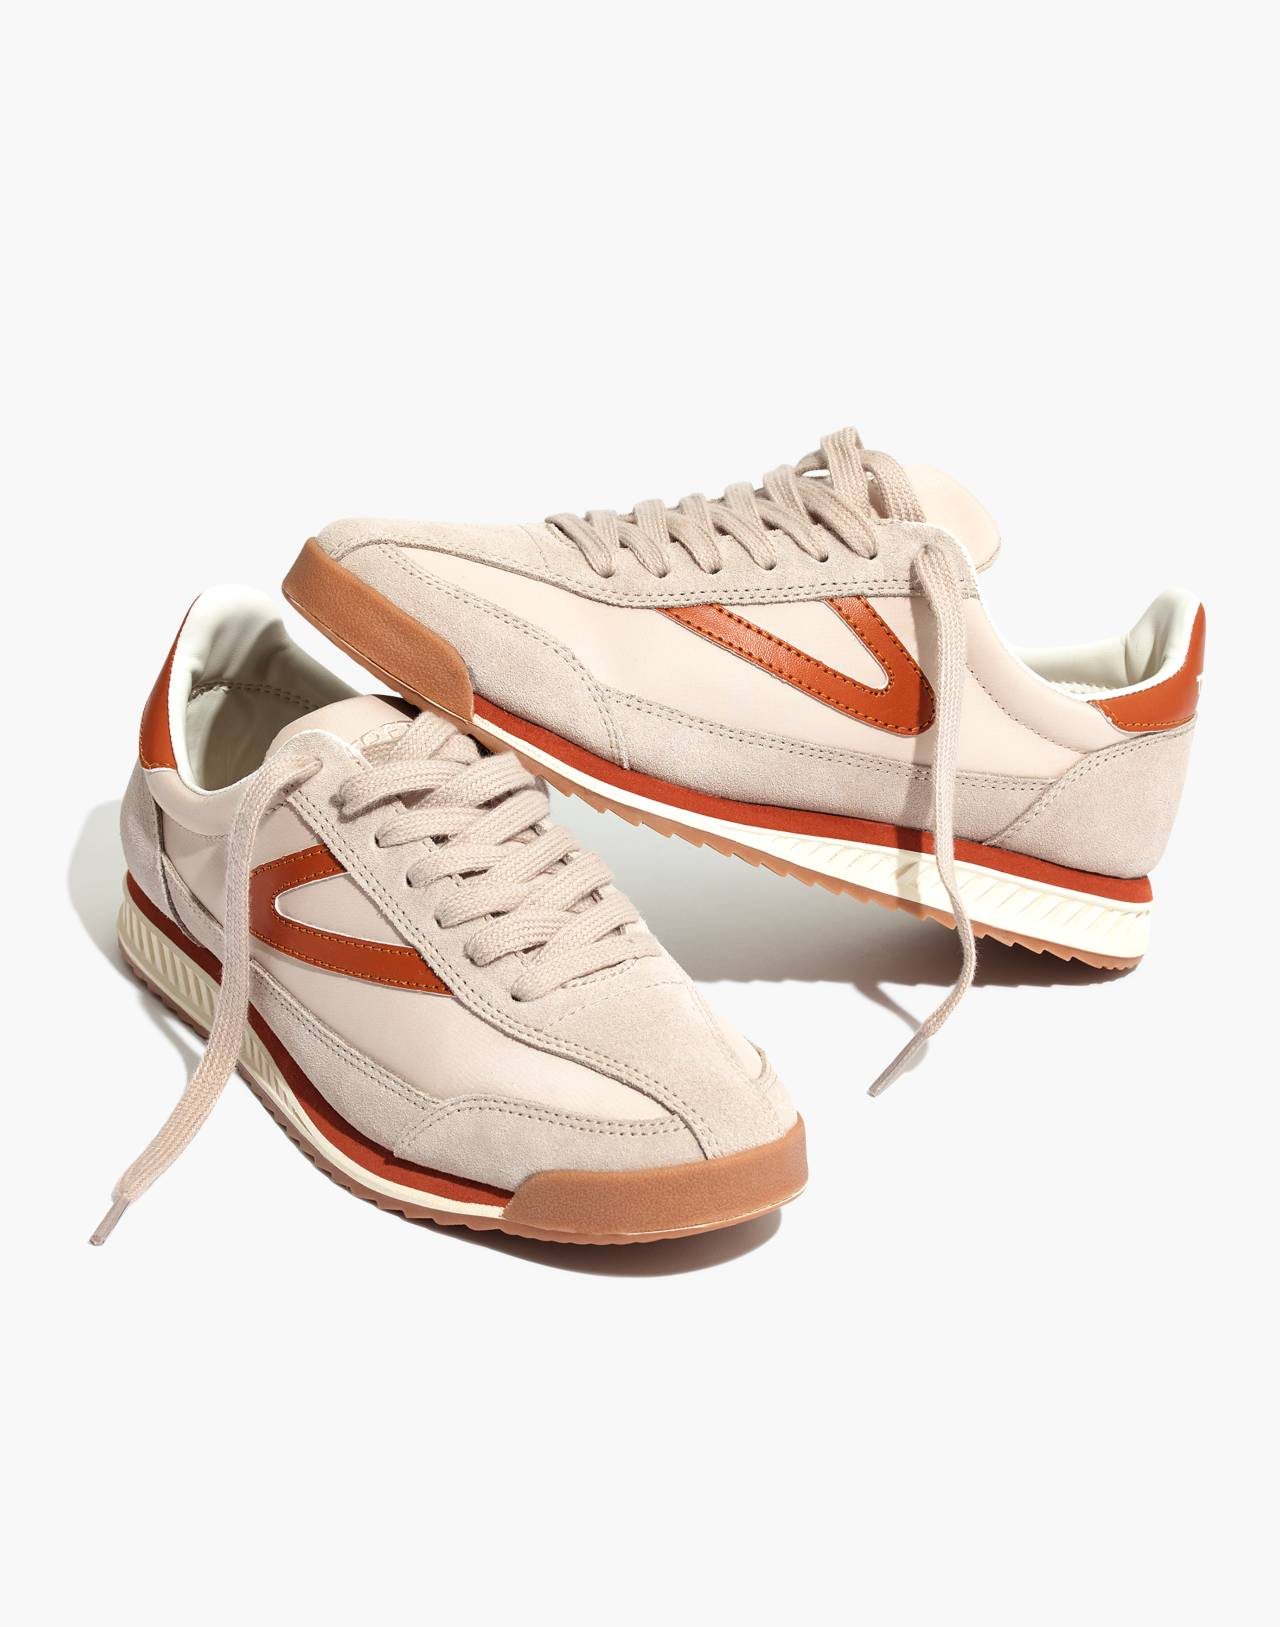 Madewell x Tretorn® Rawlins3 Sneakers in tan neutral image 1